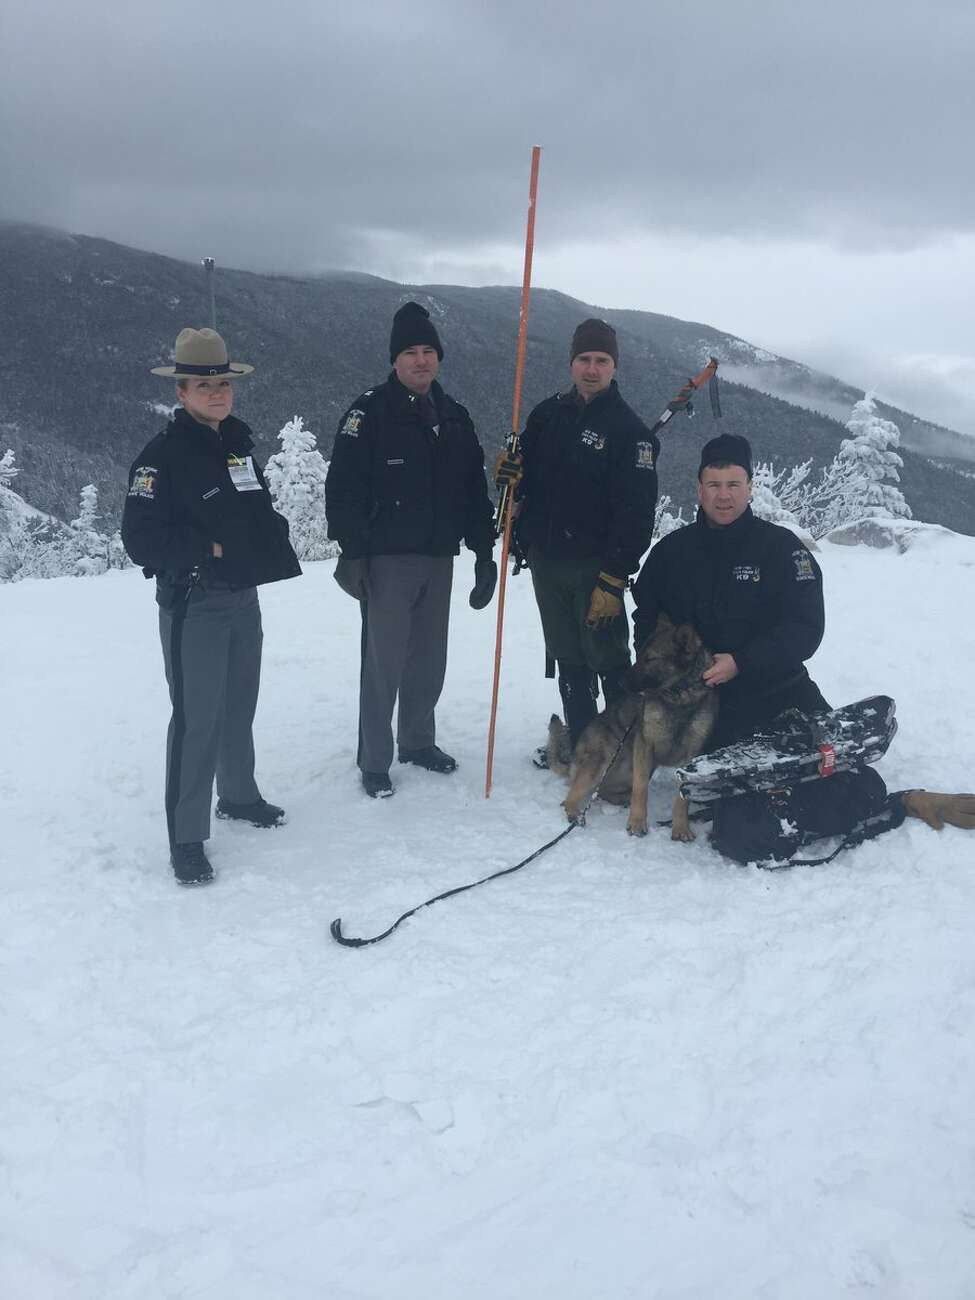 Members of the State Police on Whiteface Mountain while searching for missing skier, Constantinos